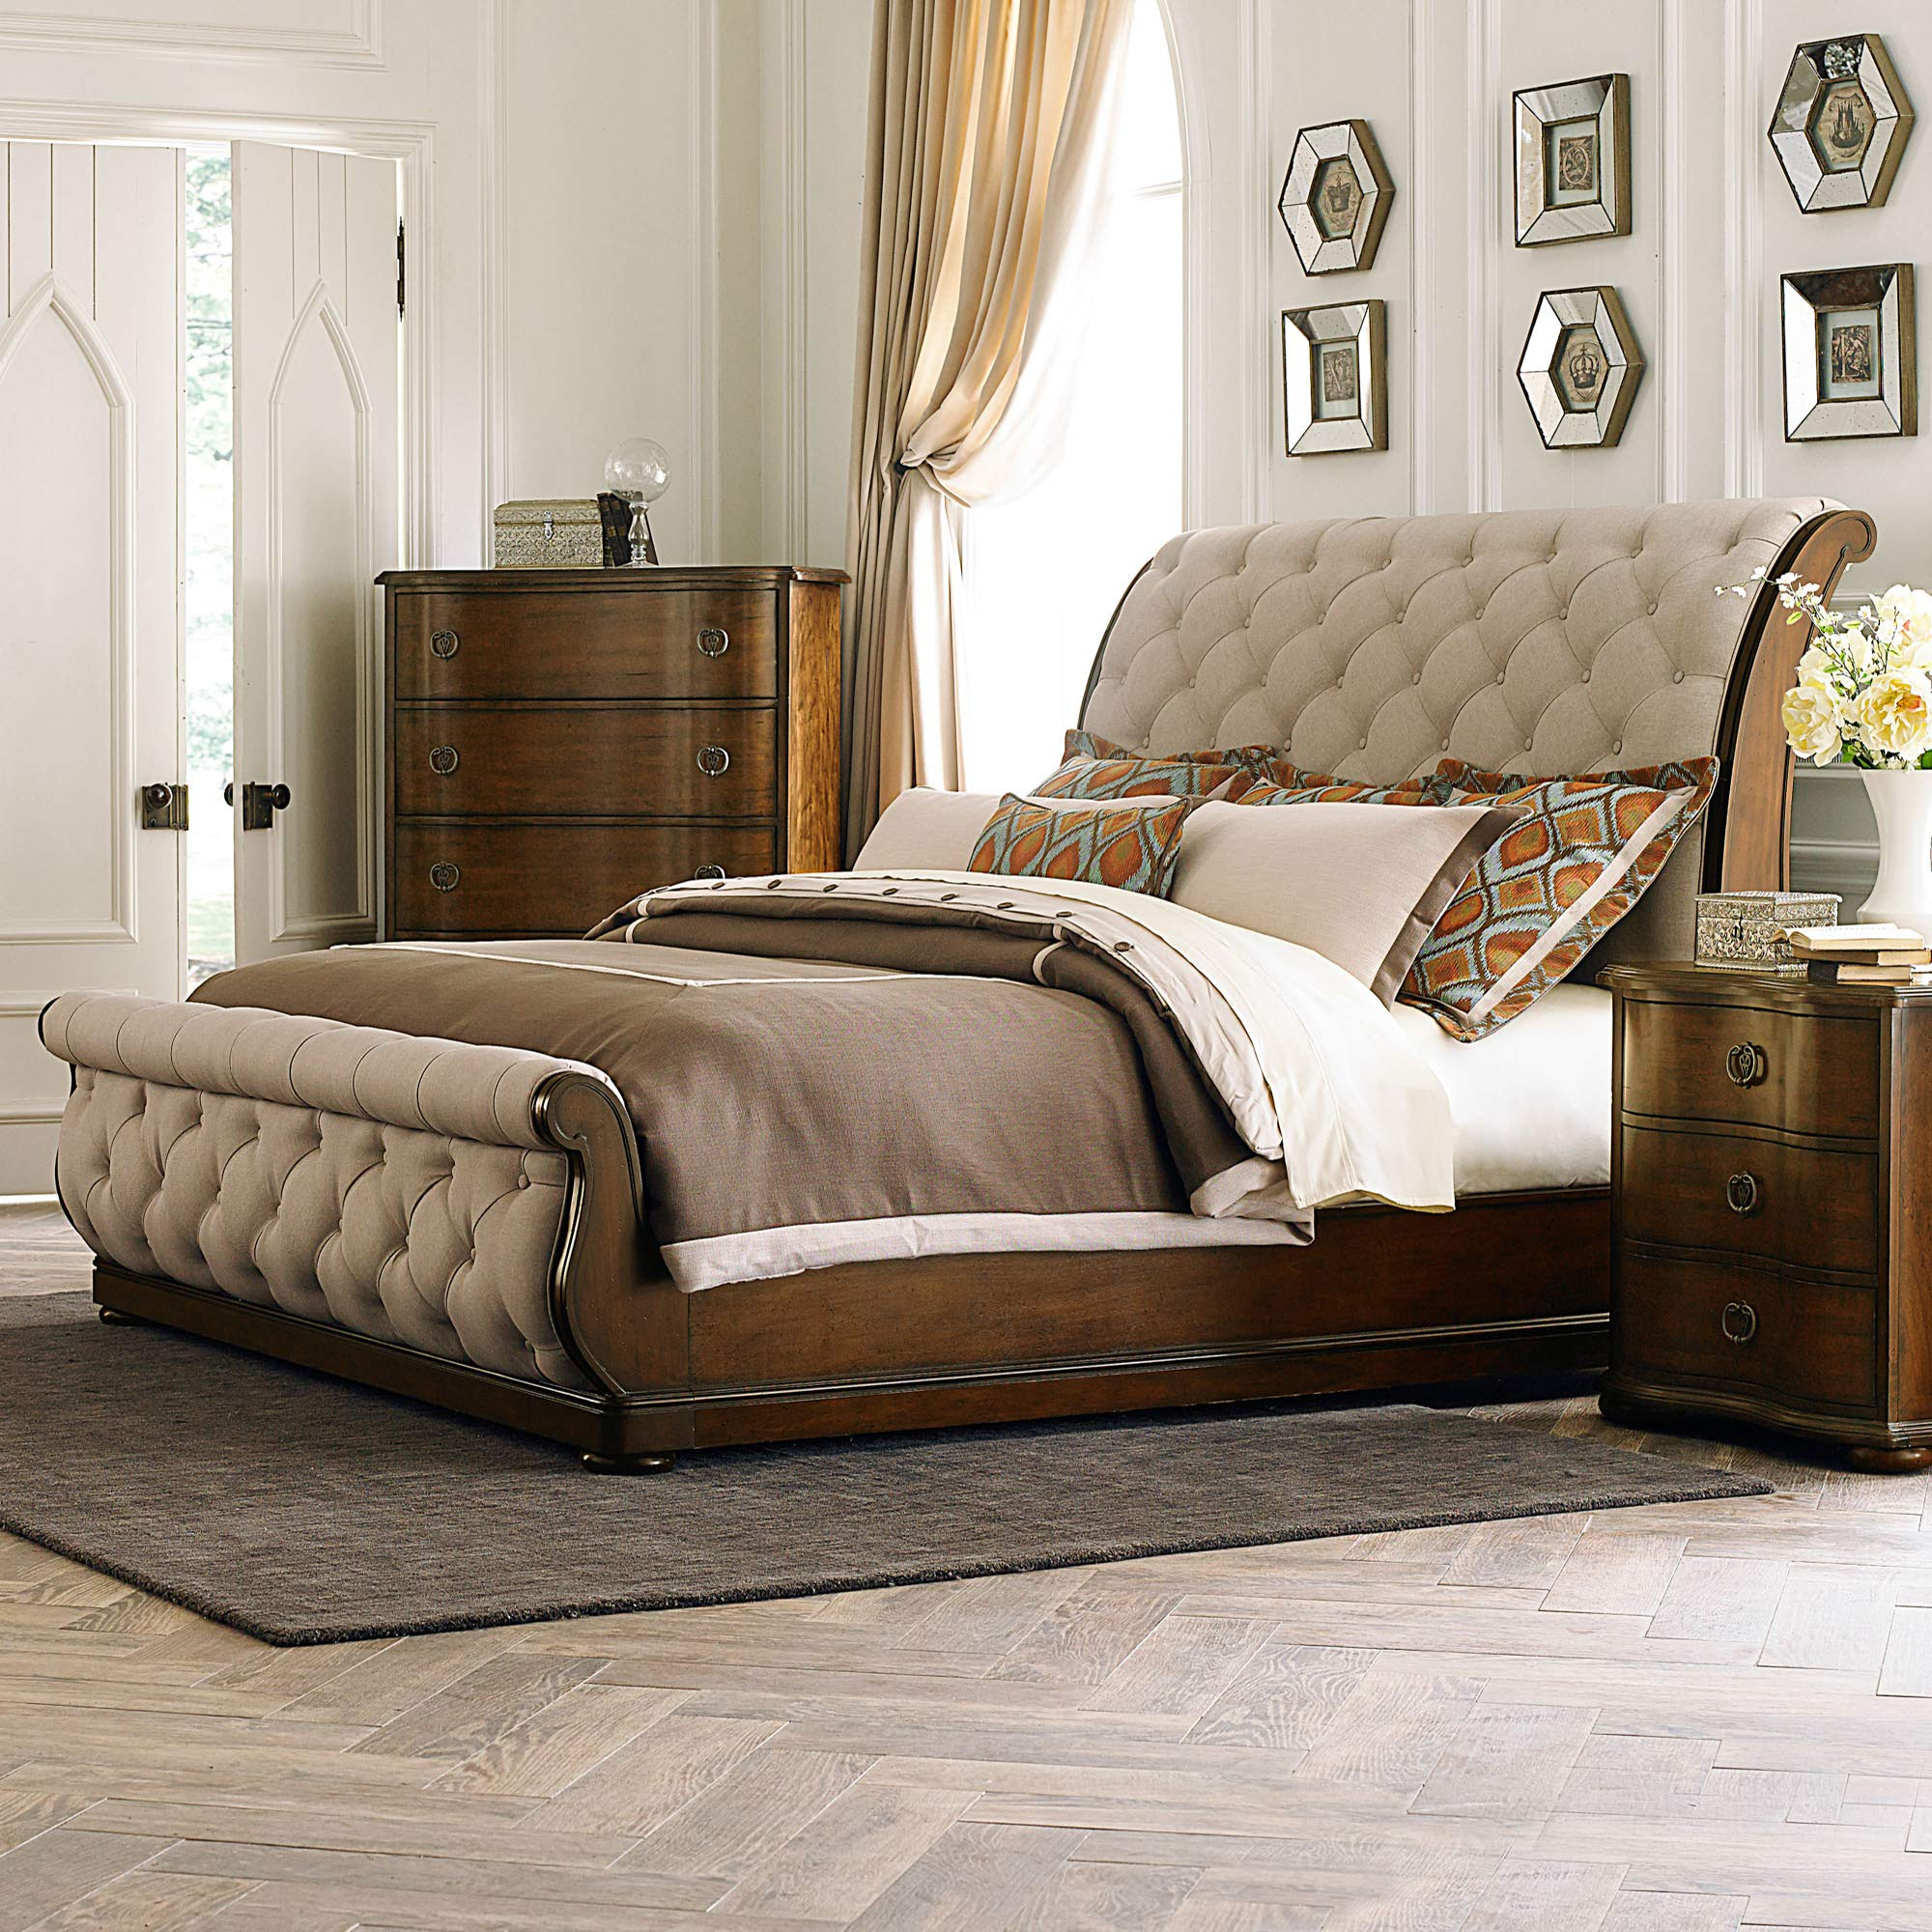 Liberty Furniture Industries Cotswold Sleigh, King, Cinnamon by Liberty Furniture INDUSTRIES